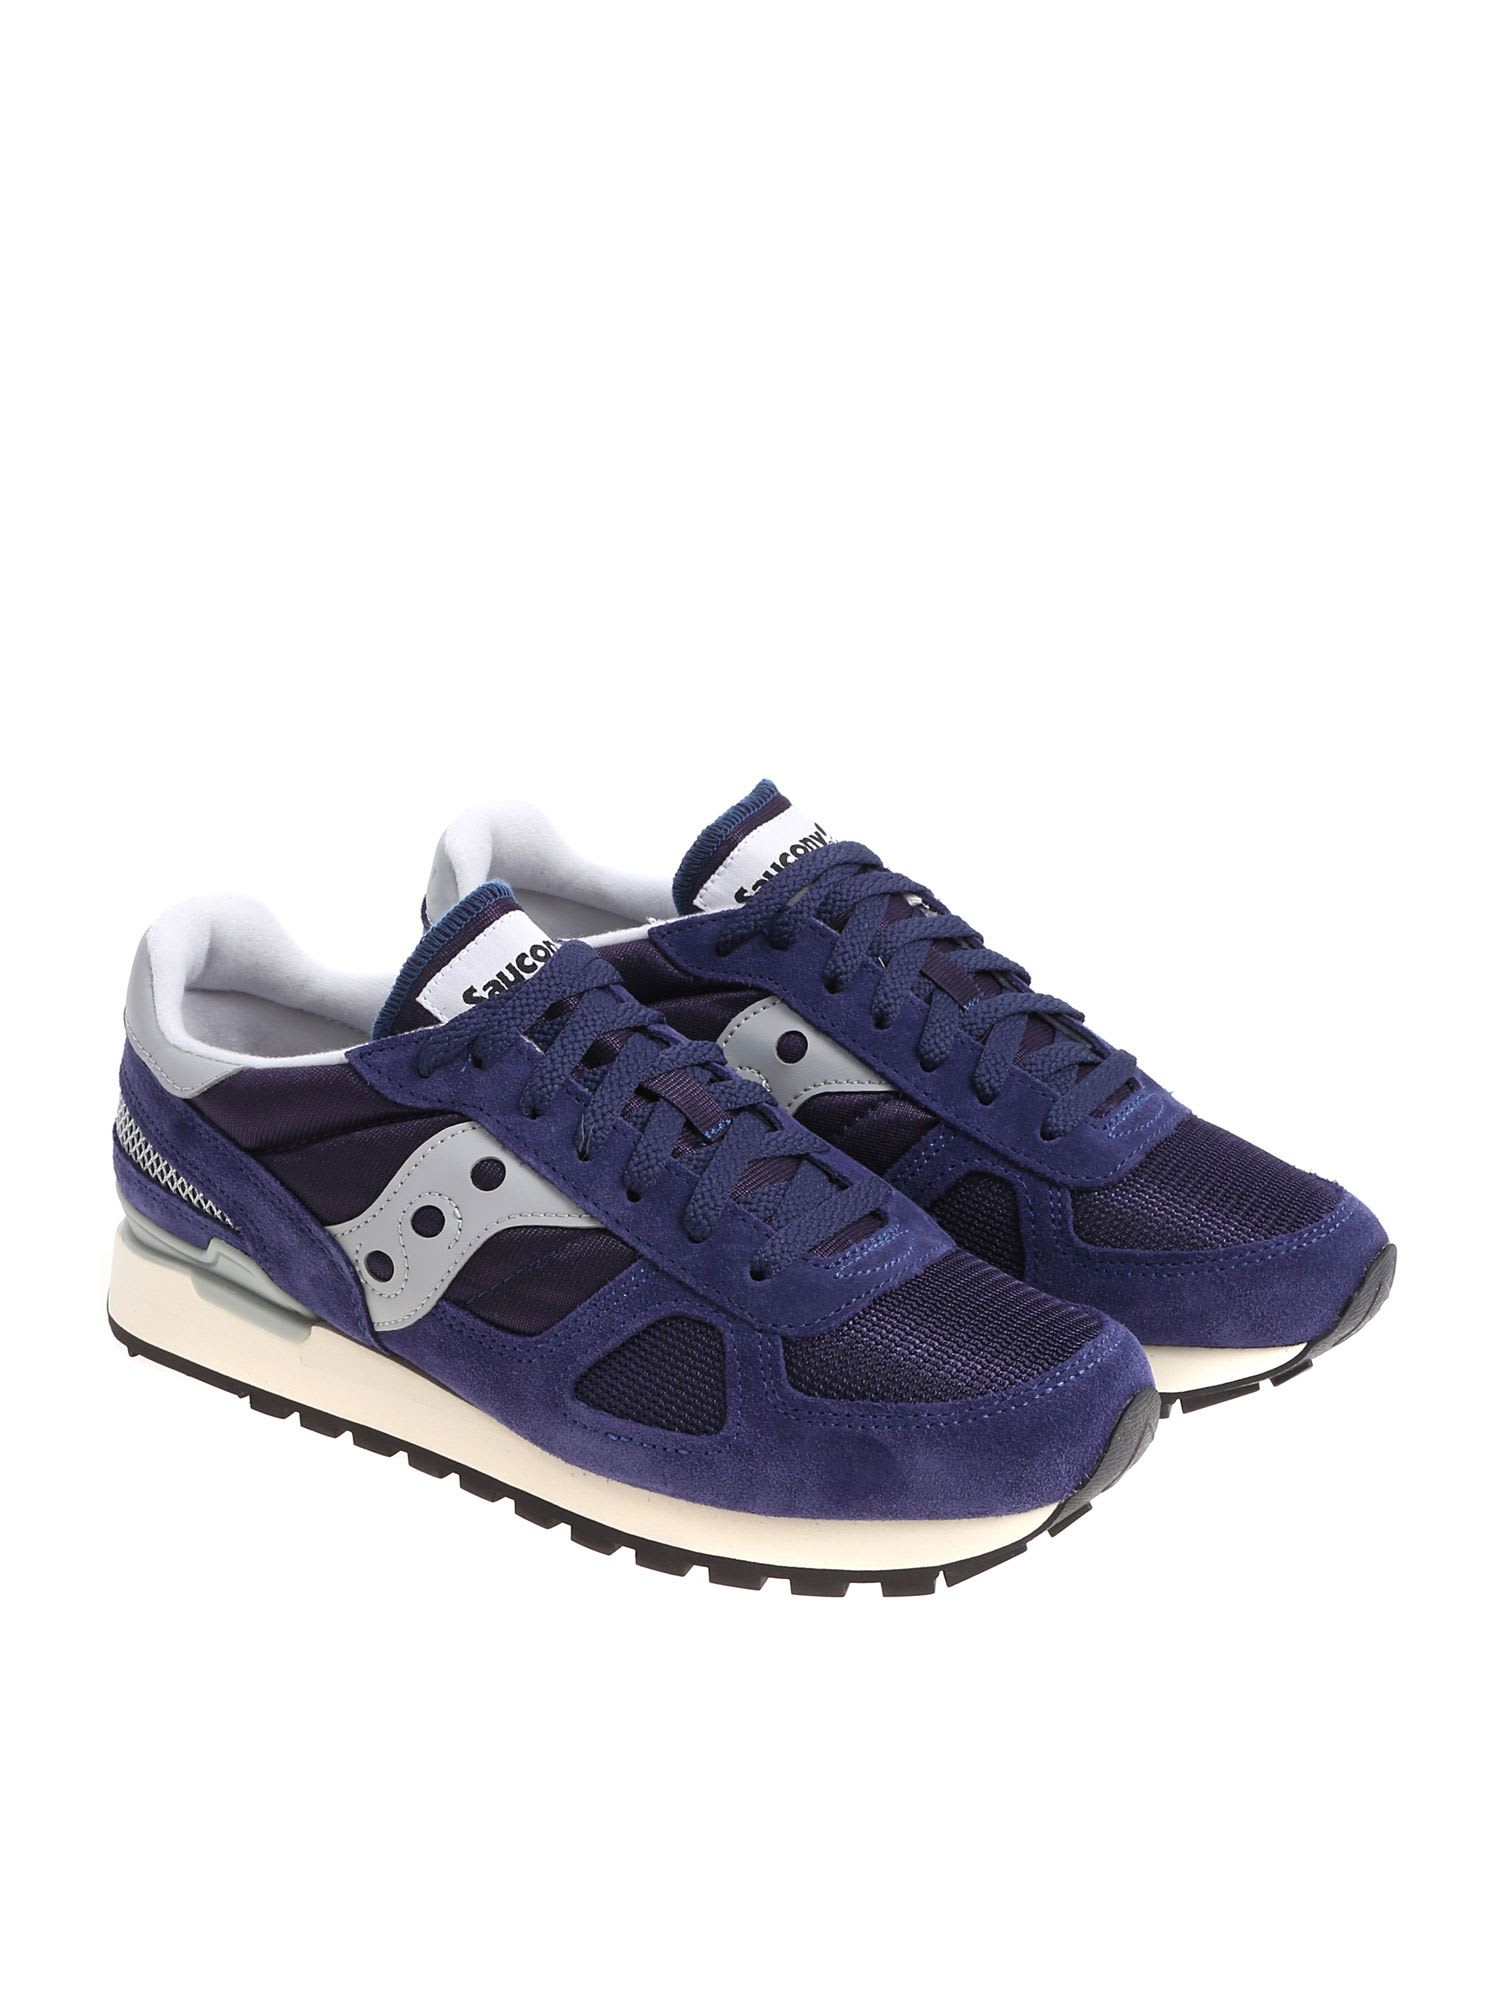 new product a094d b8611 Saucony Shadow Original Vintage Sneakers